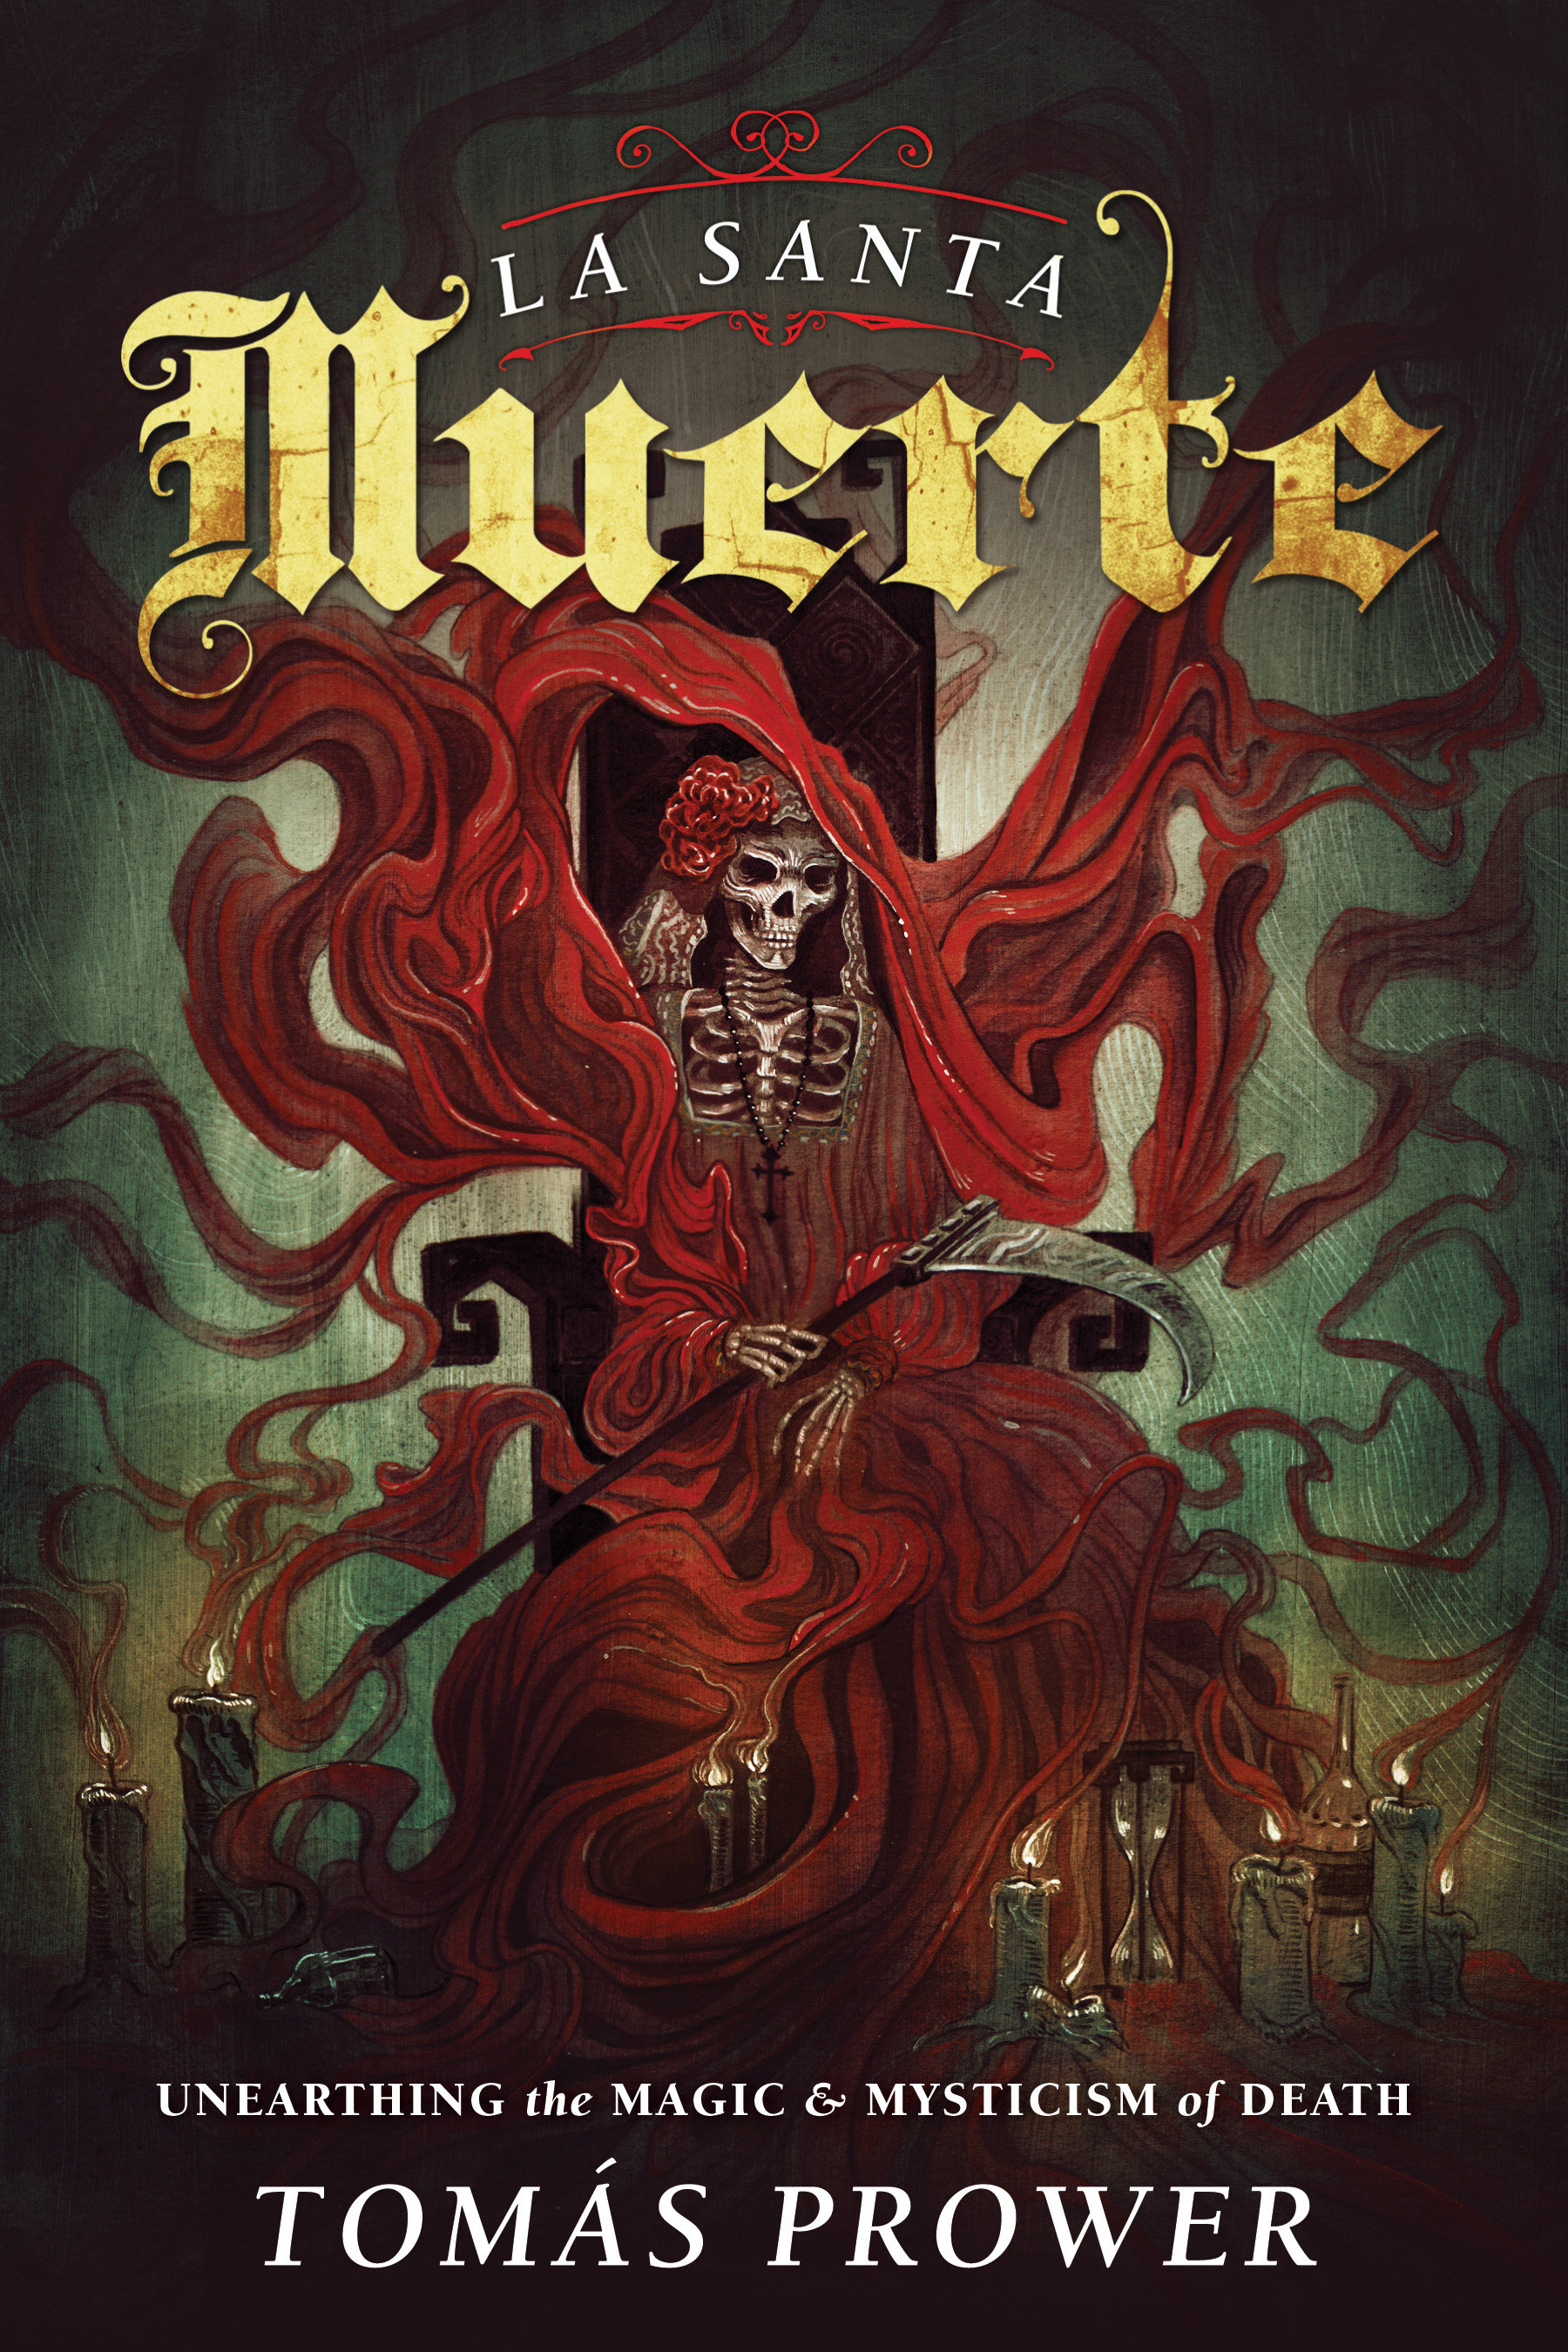 This is the first book written by a practitioner that presents the history, culture, and practical magic of La Santa Muerte to the English-speaking world. As the patron saint of lost causes, the LGBT community, addicts, and anyone who has been marginalized by society, La Santa Muerte has a following of millions—and she's only becoming more popular. Join author Tomás Prower as he gives step-by-step instructions for spells, magic, and prayers for practical results and long-term goals, including money, love, sex, healing, legal issues, protection, and more. La Santa Muerte also includes detailed information on:  Her Names  Tools  Altars  Offerings  Spells  Prayers  Rituals  History  Myths  Symbols  Meditations  Ethics  Colors  Correspondences